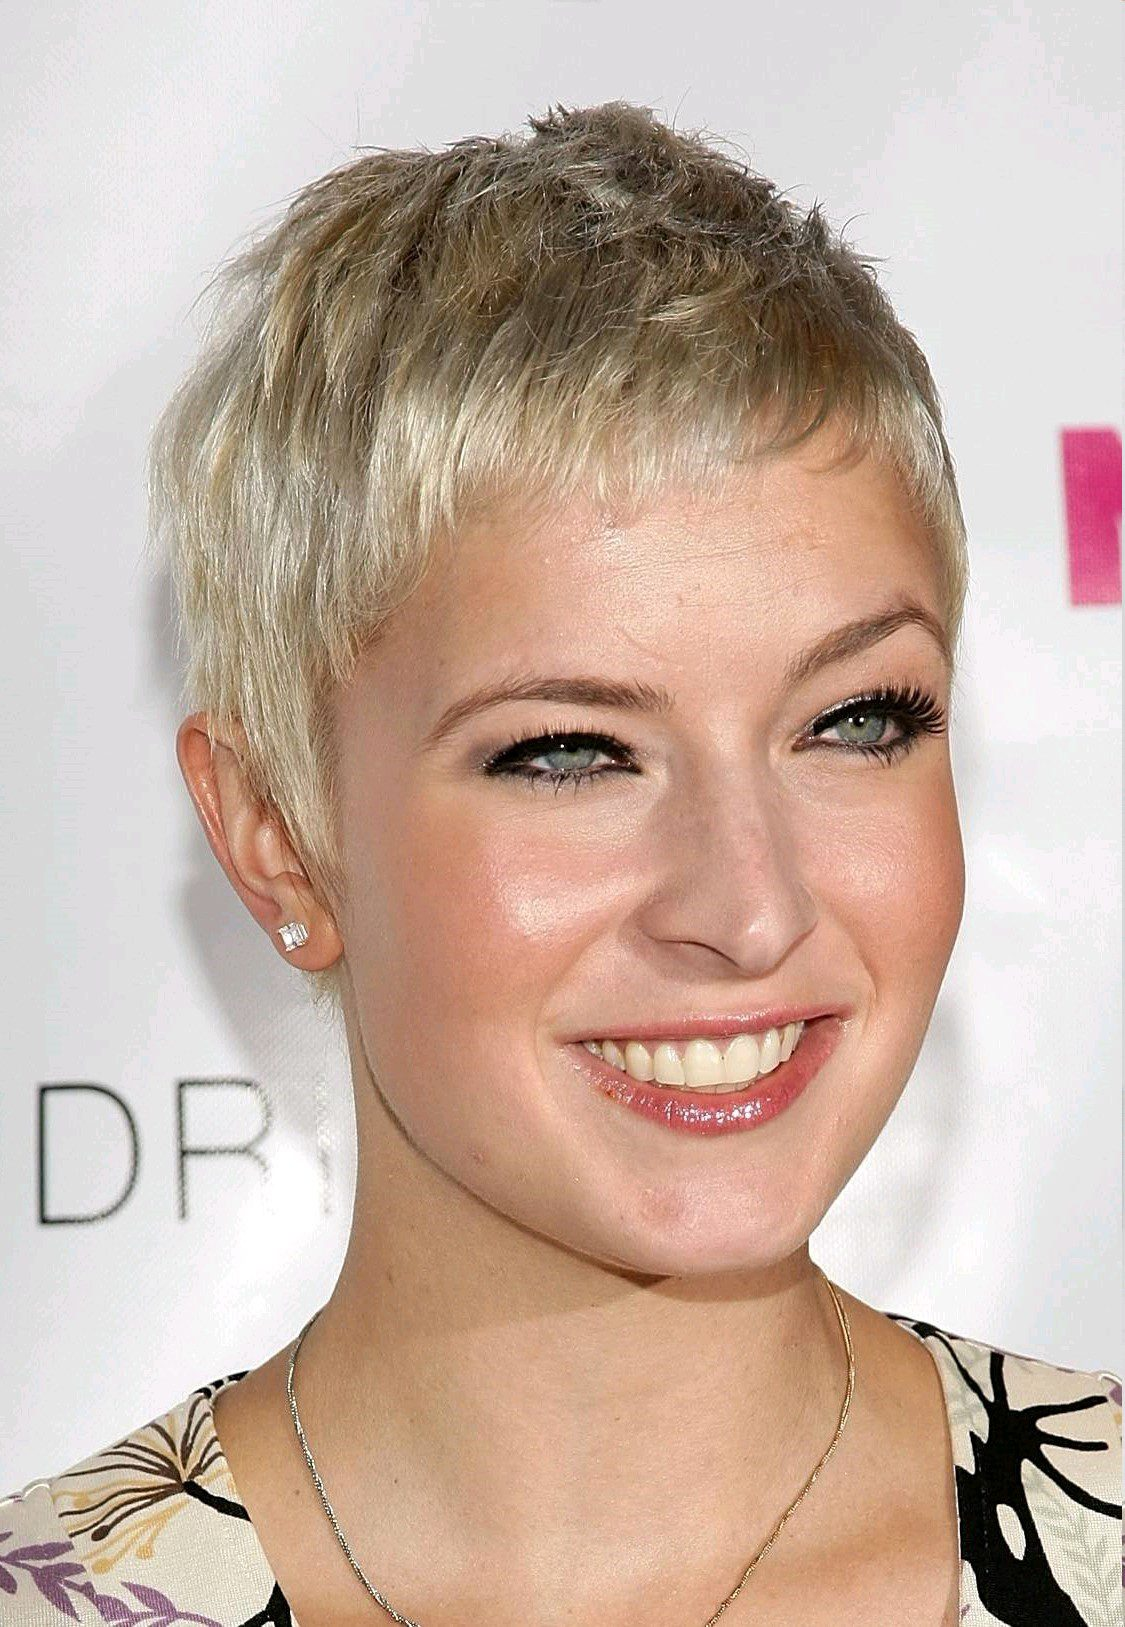 55 Year Old Woman's Short Hairstyles